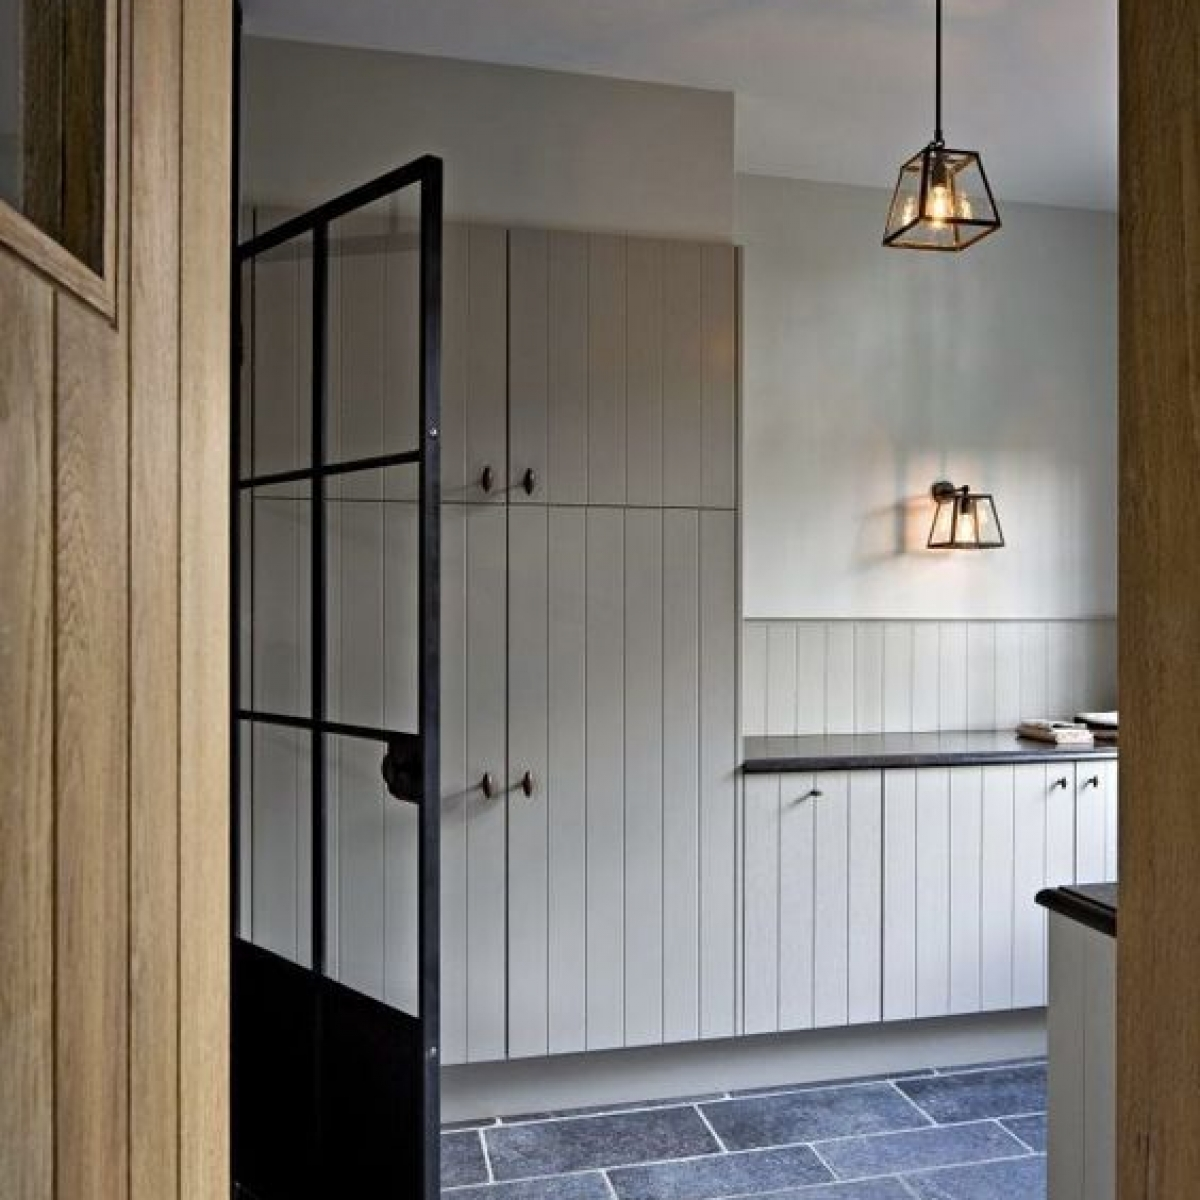 V groove T&G kitchen units with slate floor and Crital door